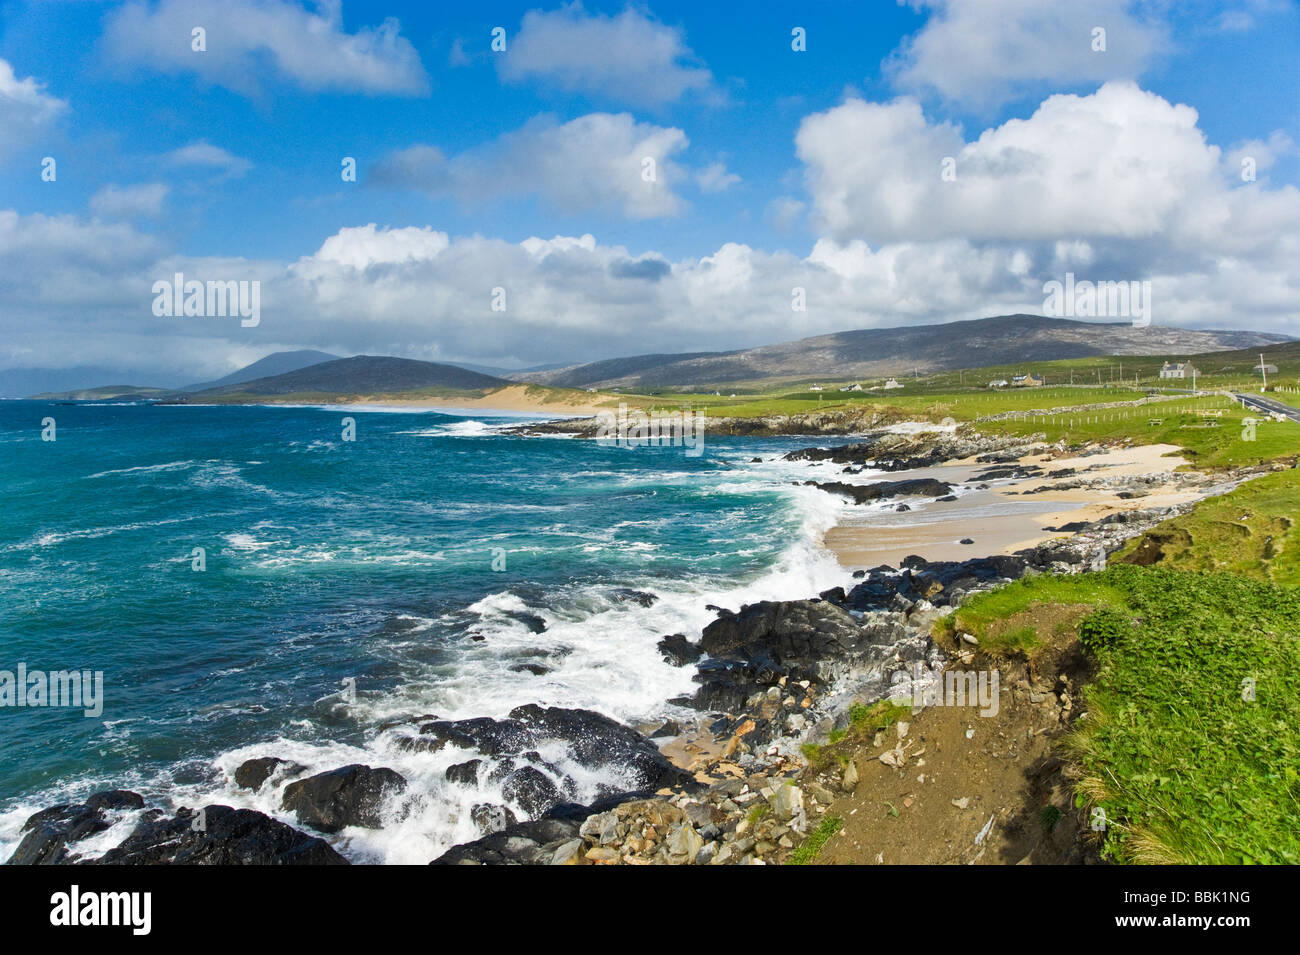 Sandy beaches and waves breaking on the west coast of South Harris near near Sgarasta Mhor South  on the Outer Hebrides - Stock Image